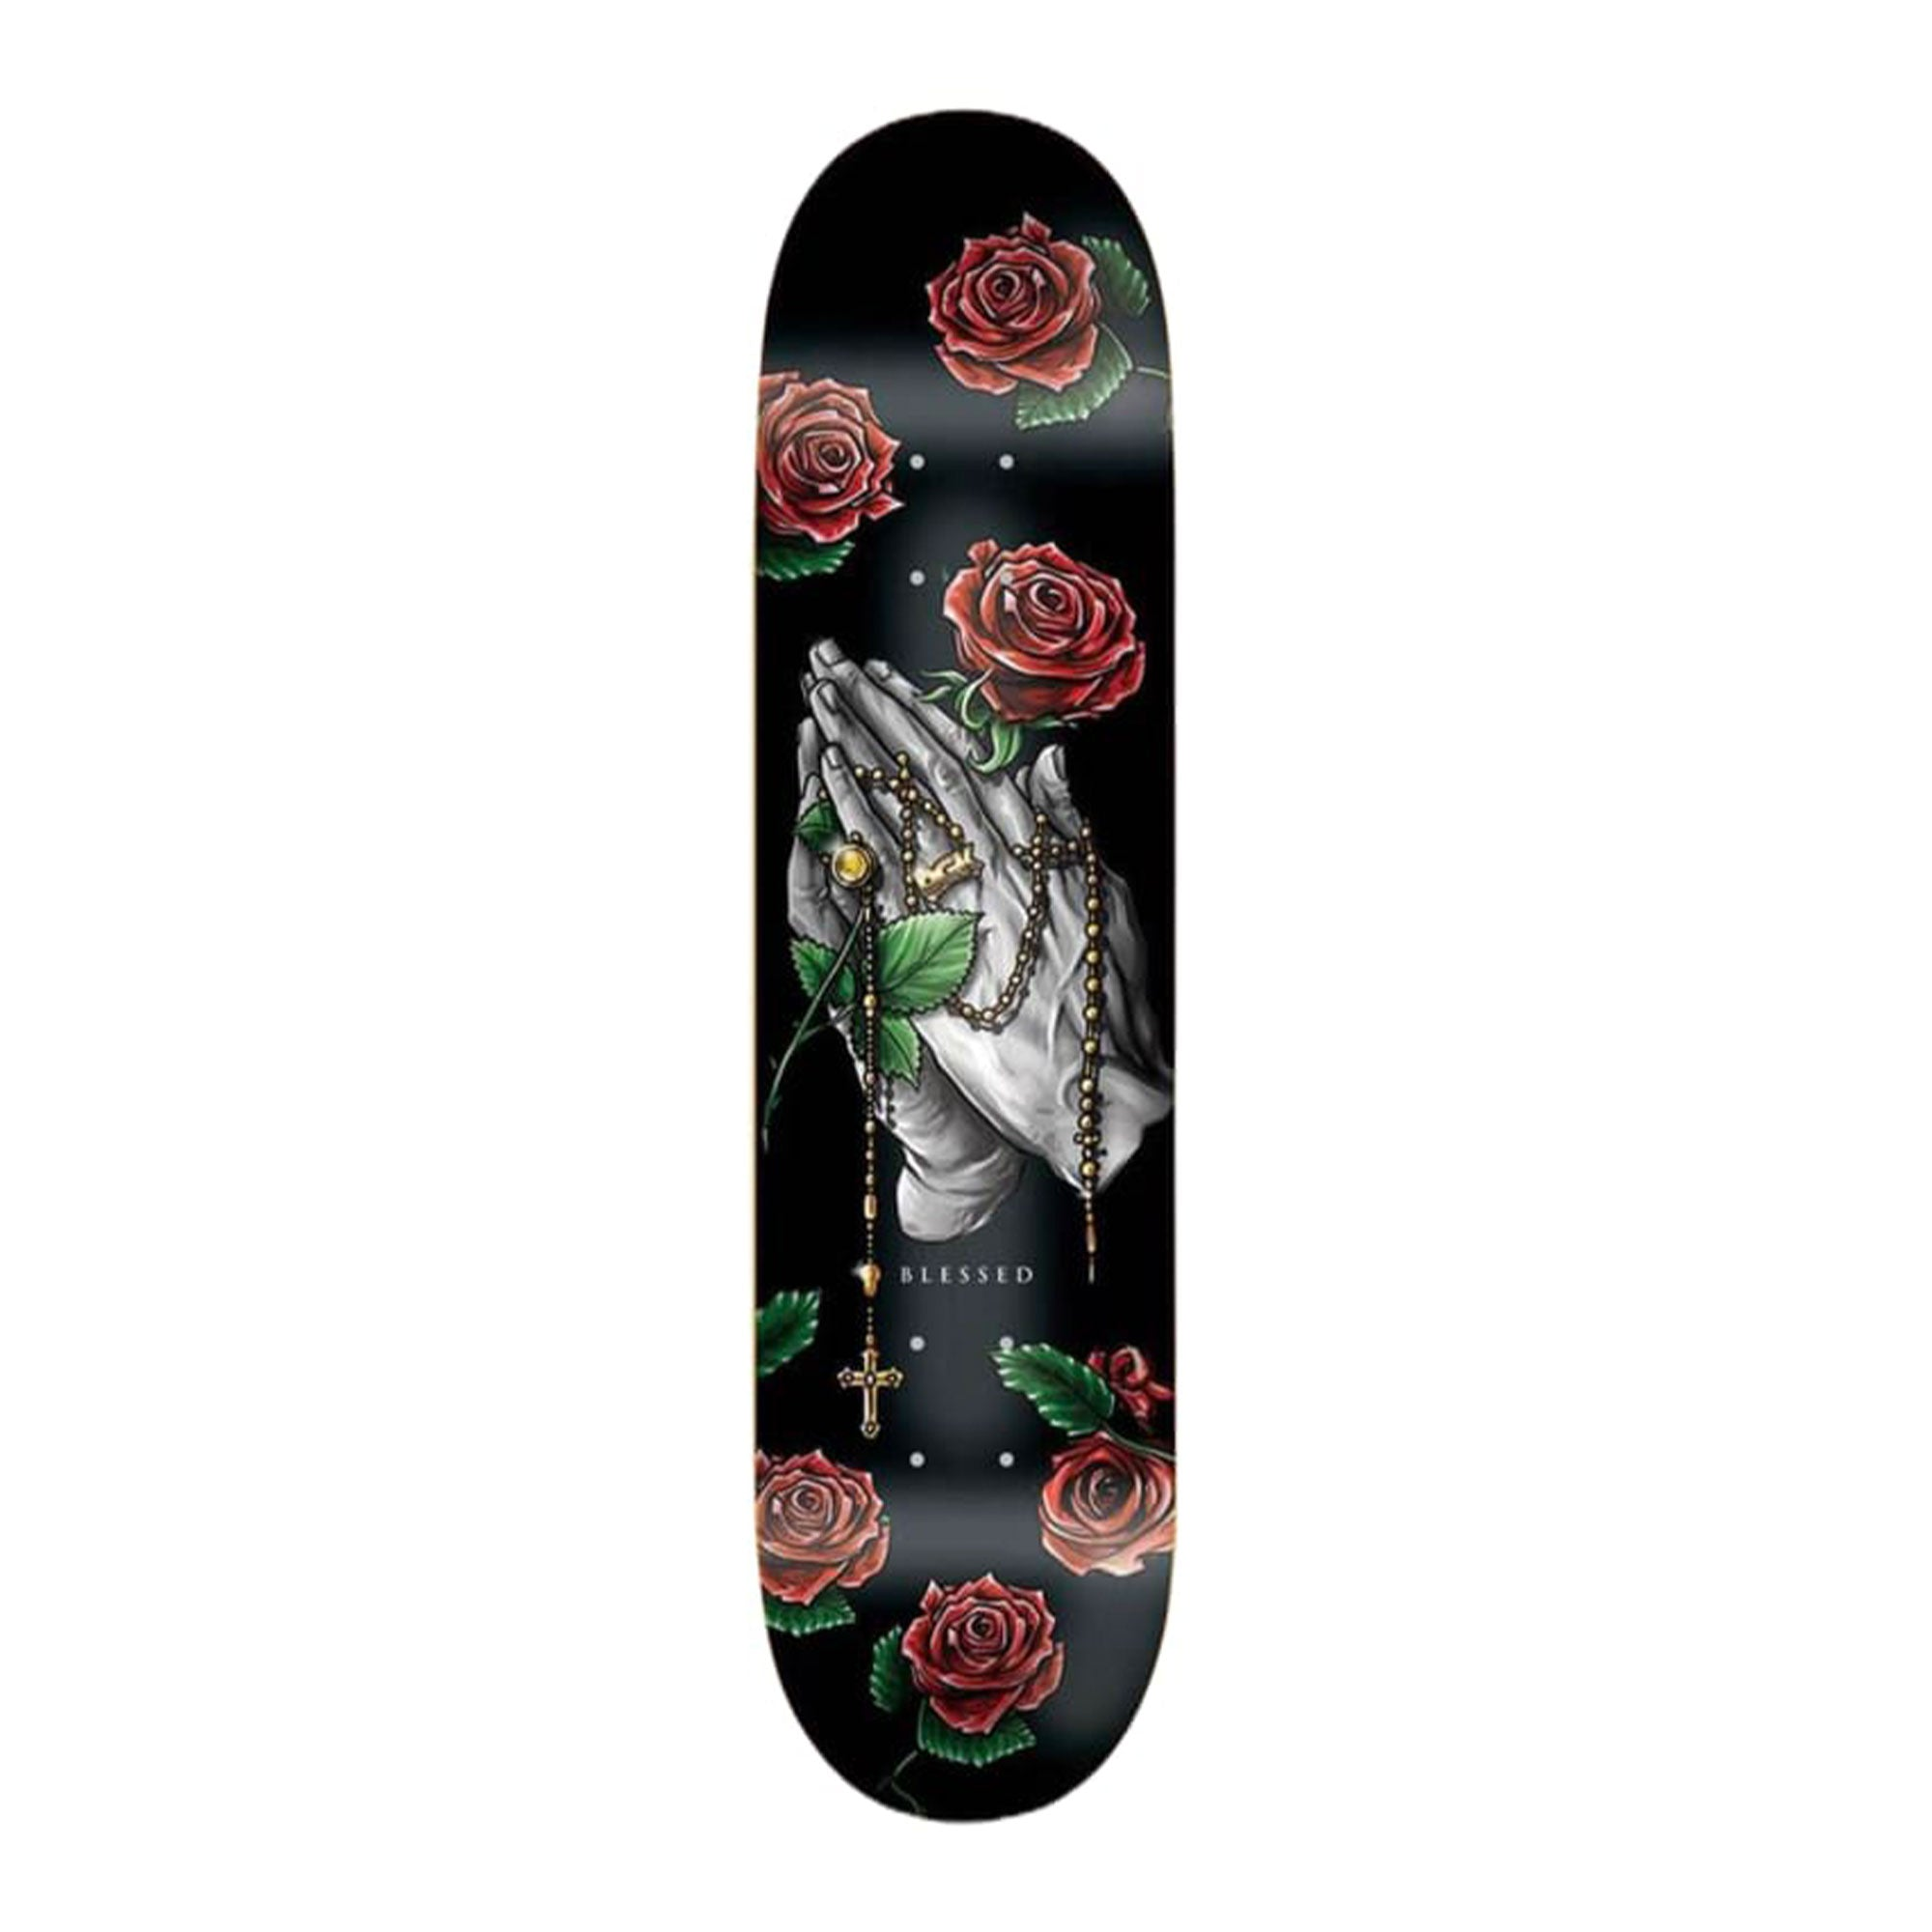 DGK Blessed Deck Product Photo #1